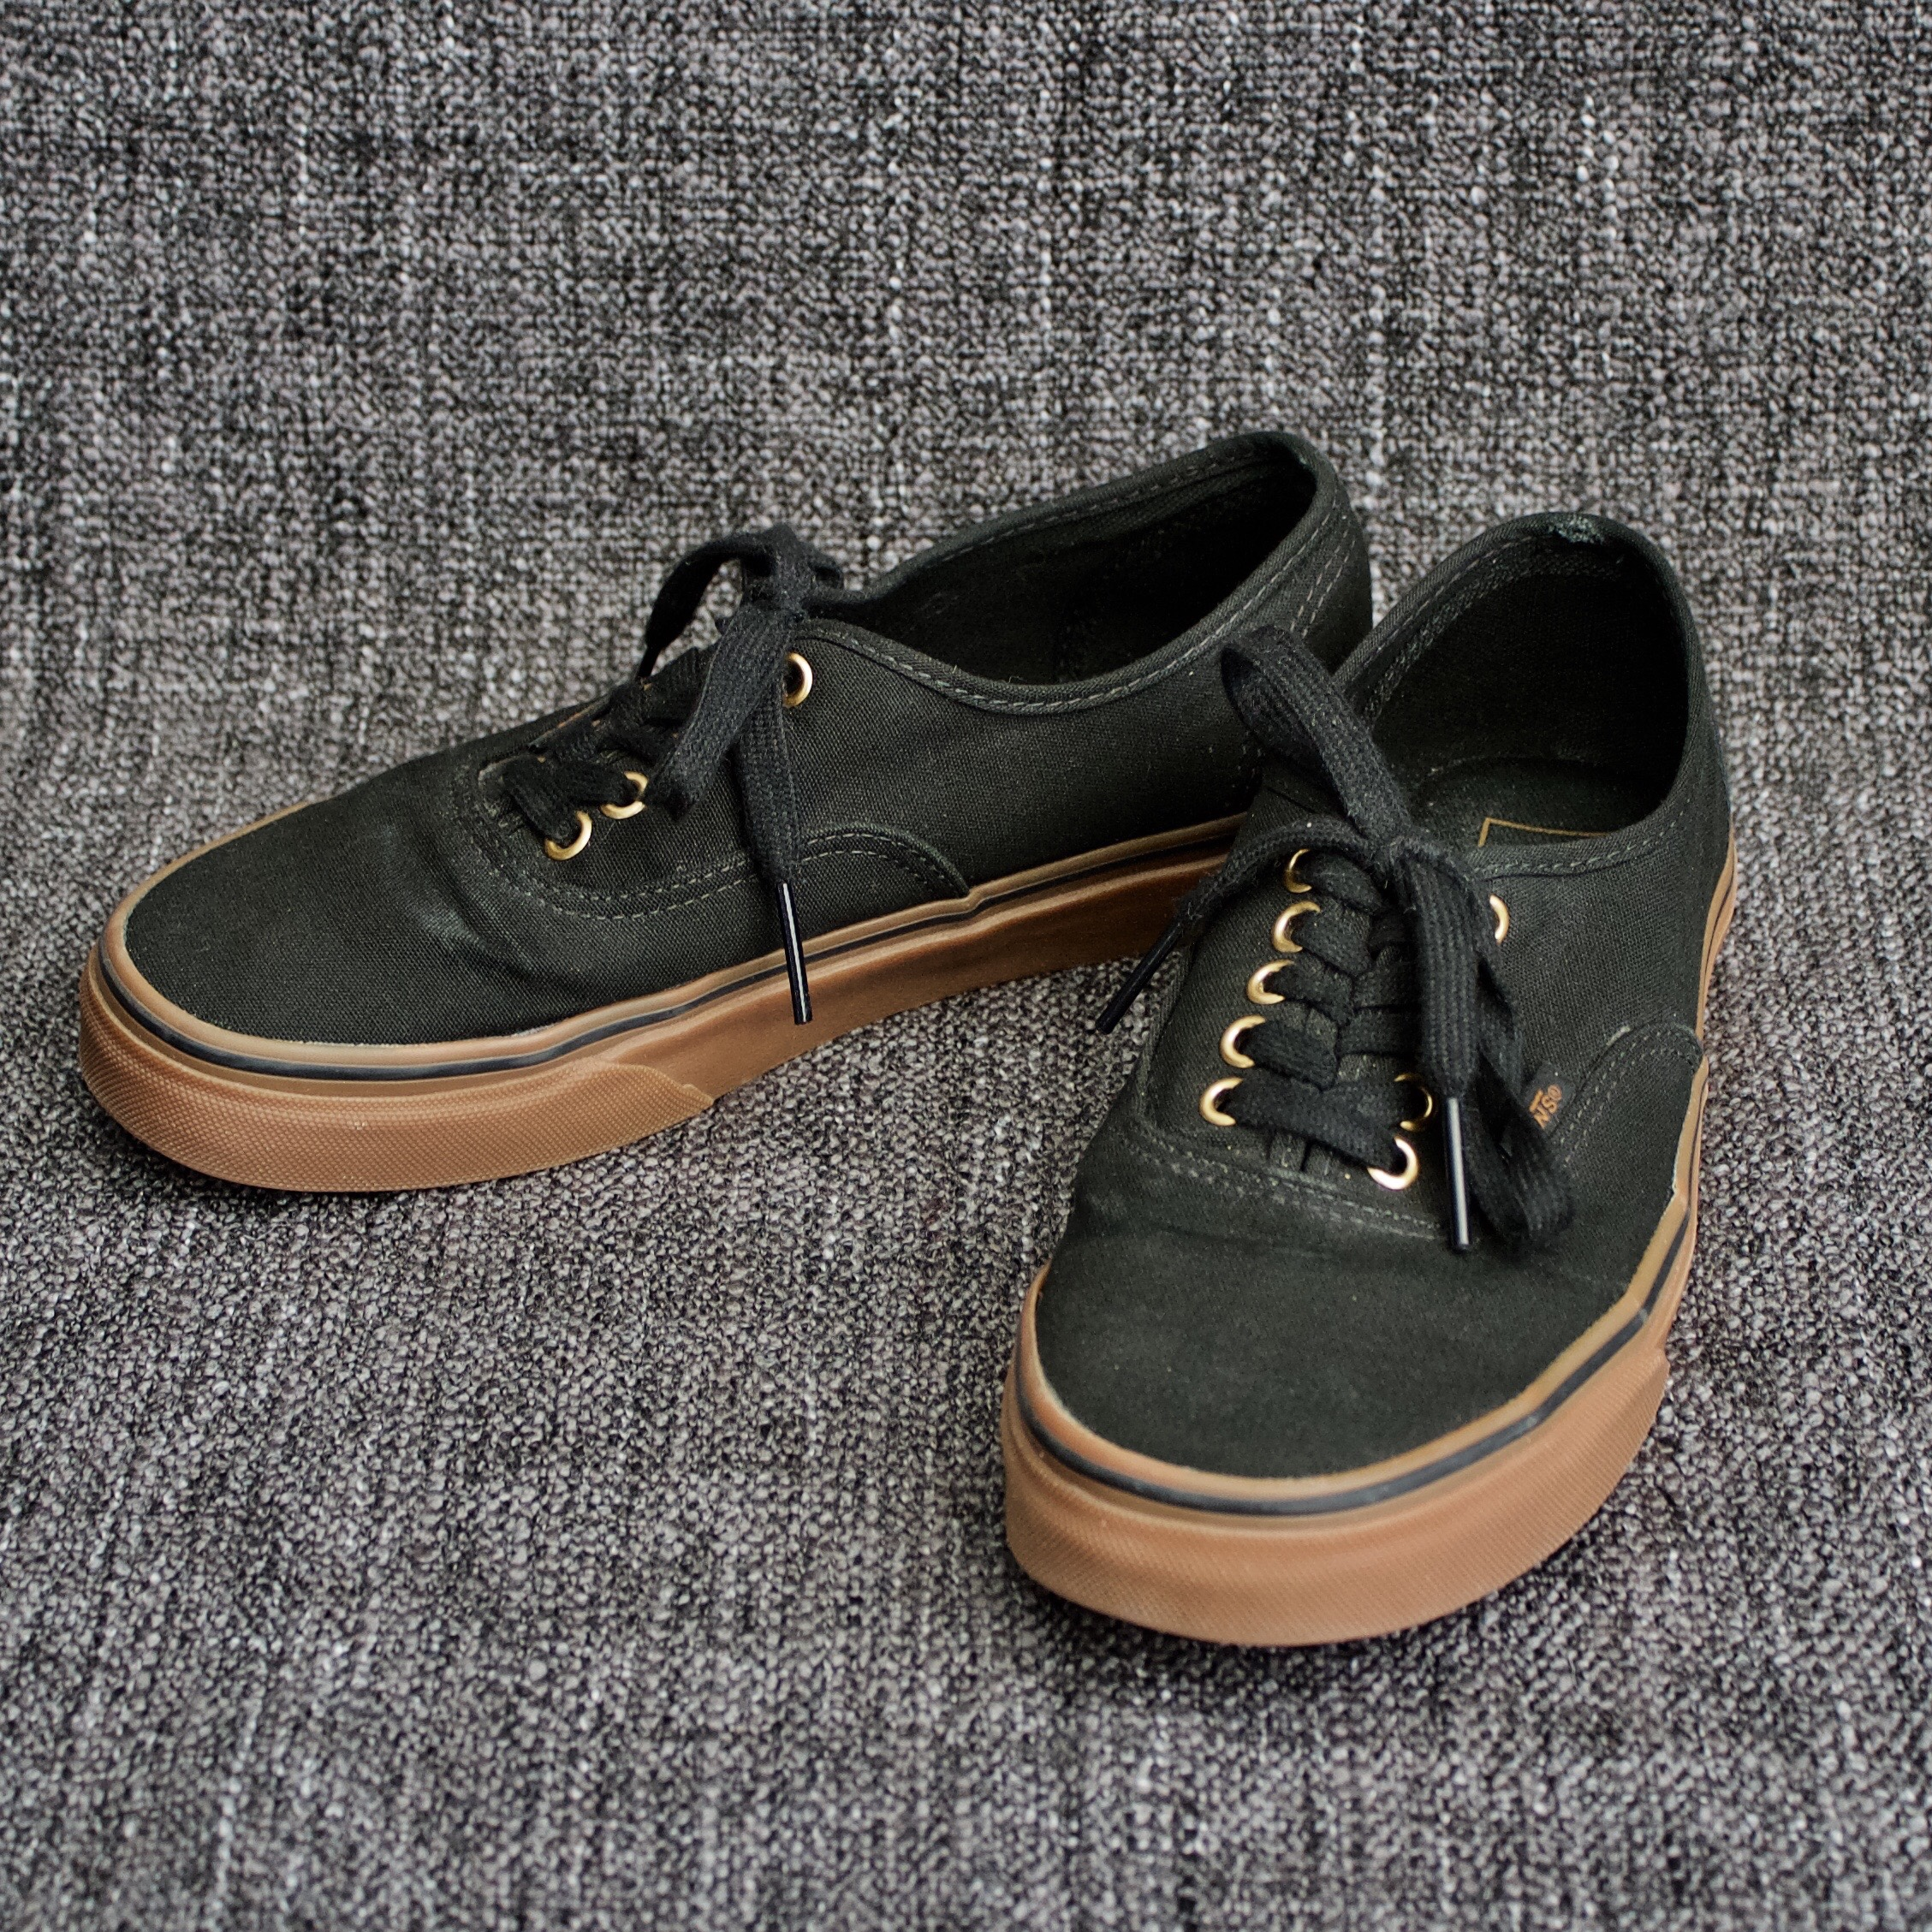 Vans Authentic in black/rubber with gum